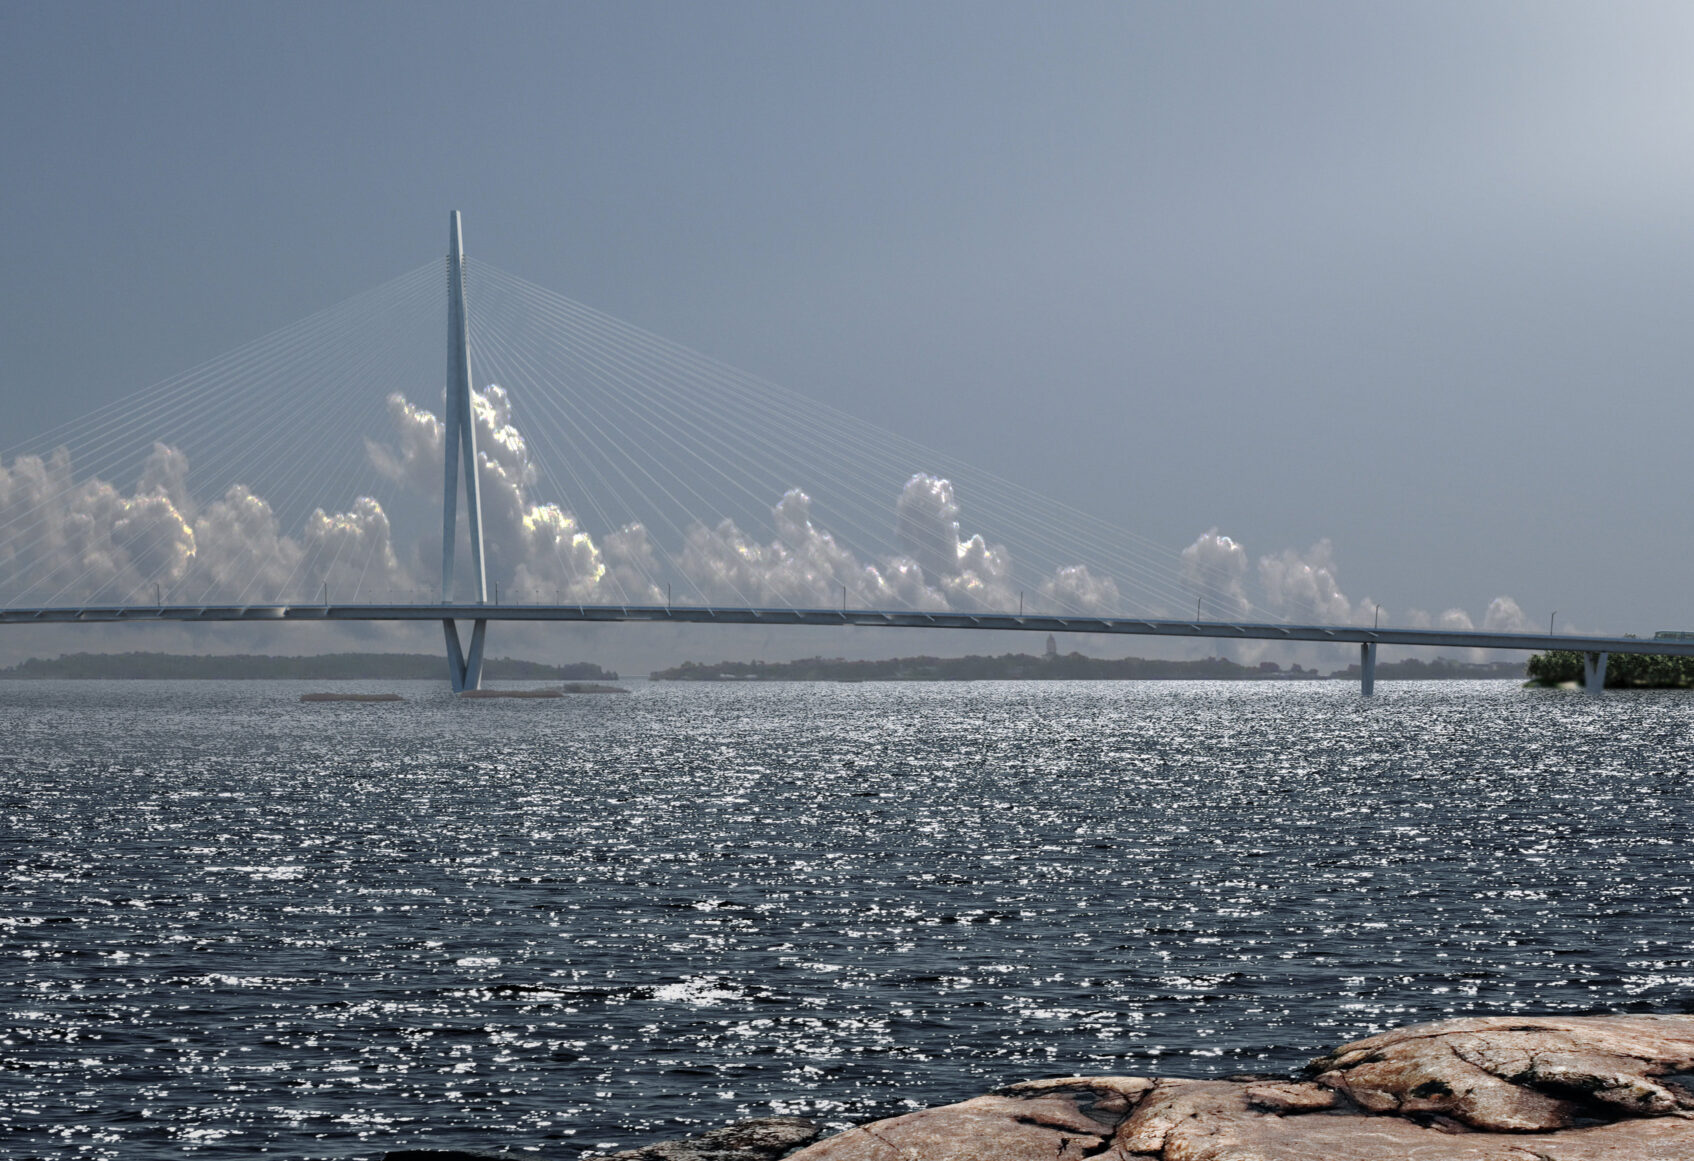 Sunny shore view of Kruunusilat bridge with clouds in the distance behind the bridge